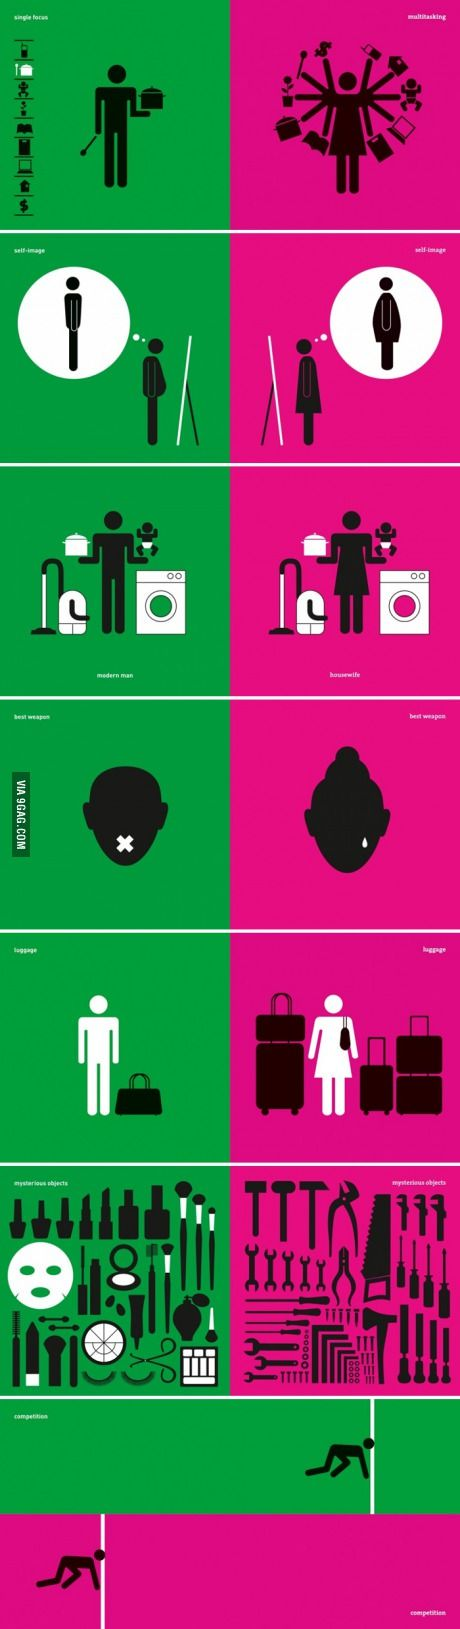 These Super Simple Pictograms Show The Ridiculousness Of Gender Stereotypes